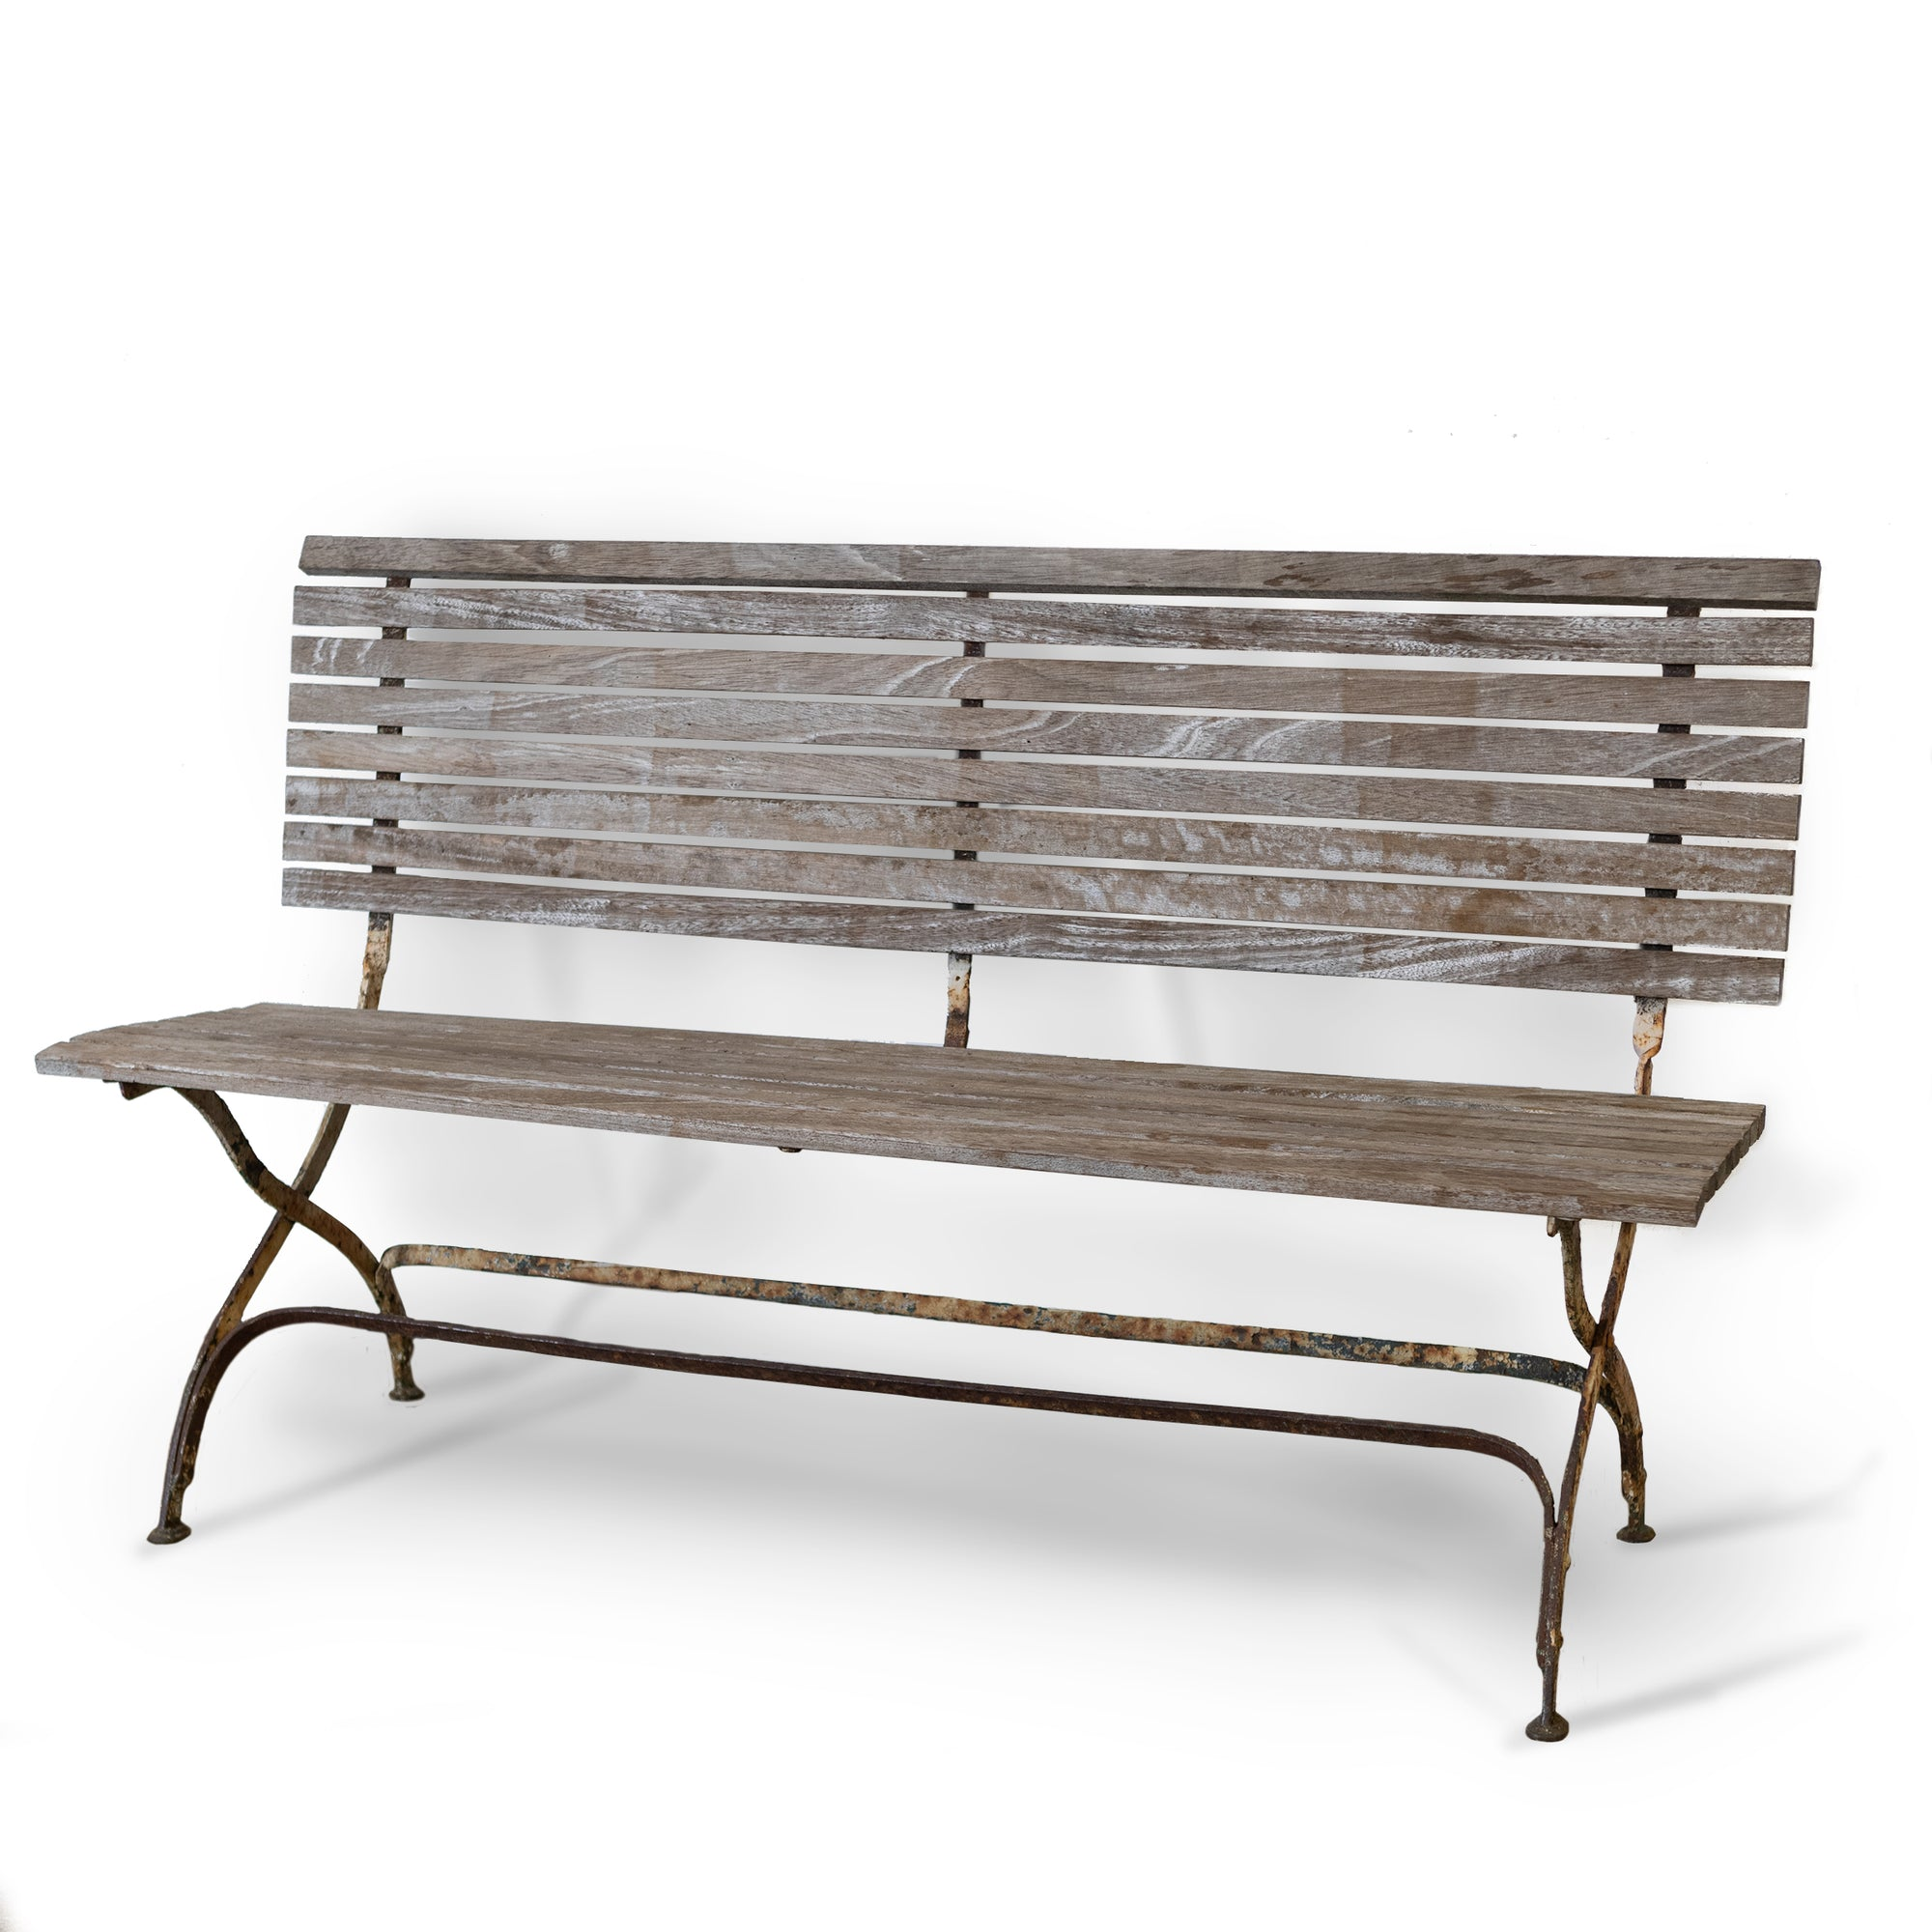 Antique Reclaimed Teak Bench with Iron Legs | The Architectural Forum